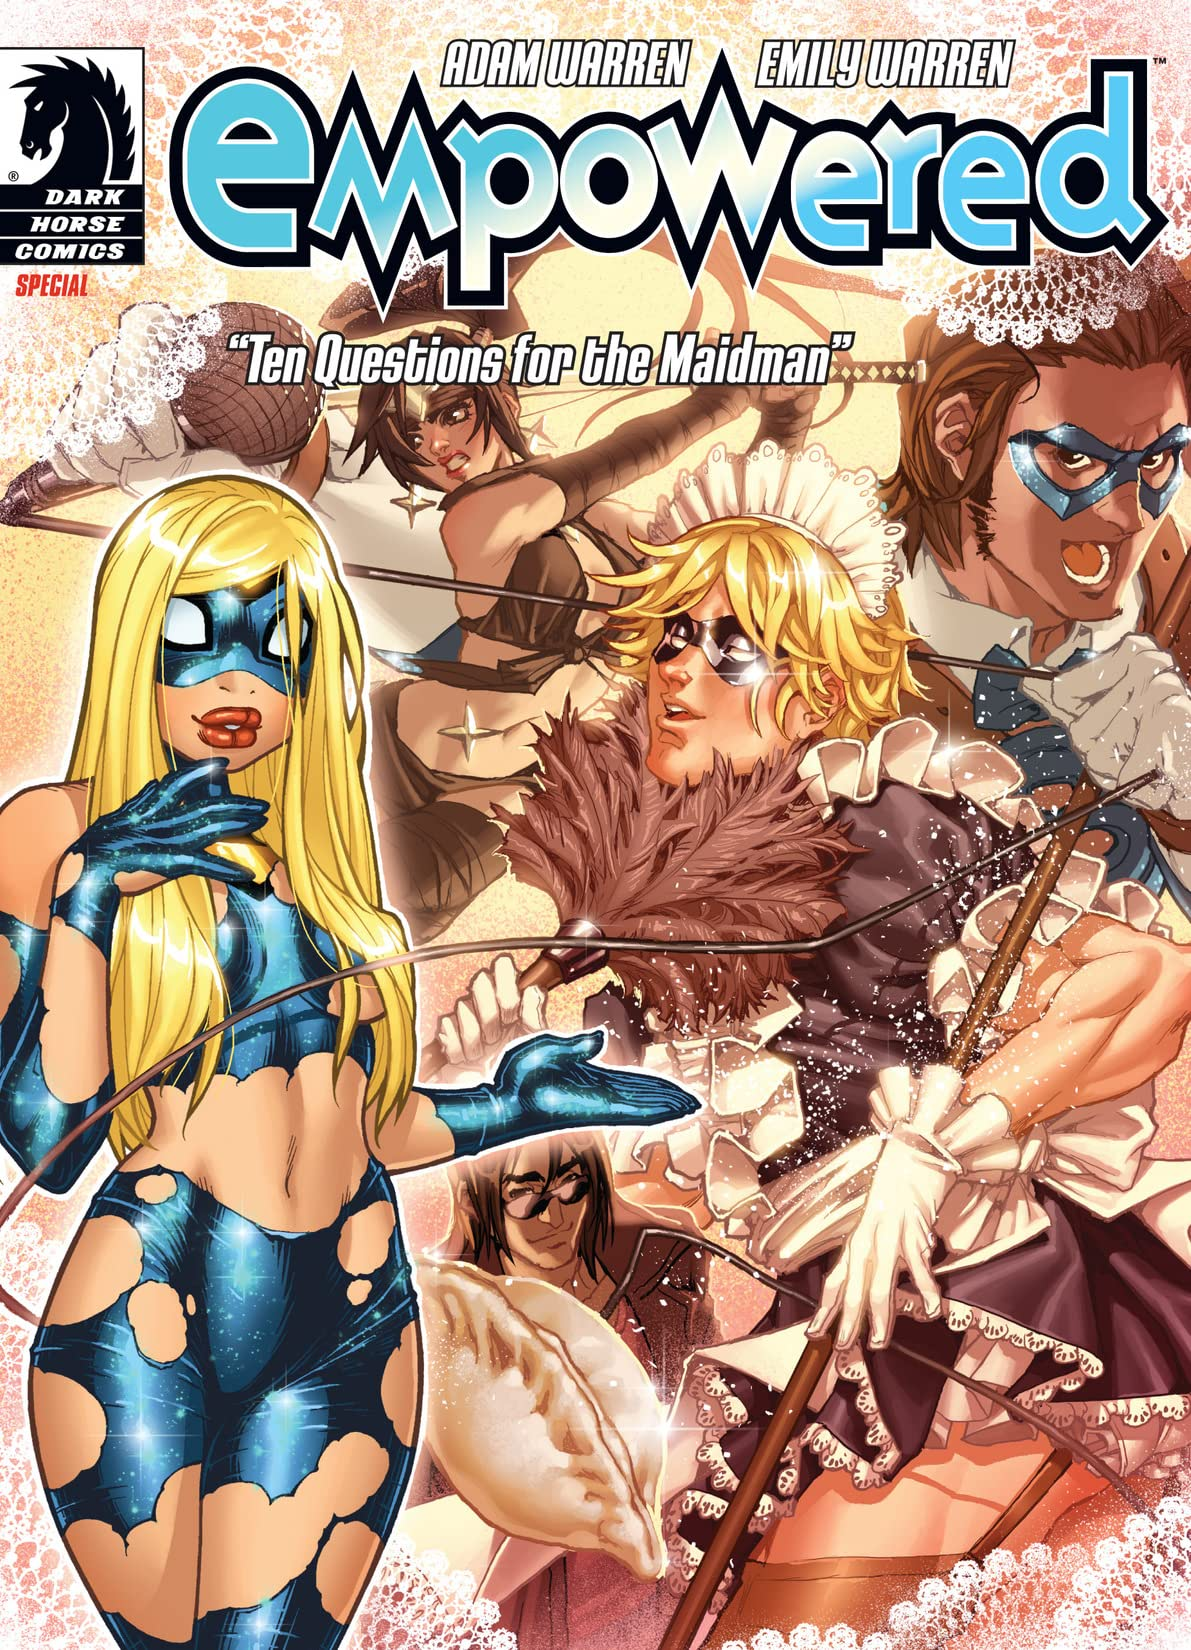 Empowered Special #2: Ten Questions for the Maidman